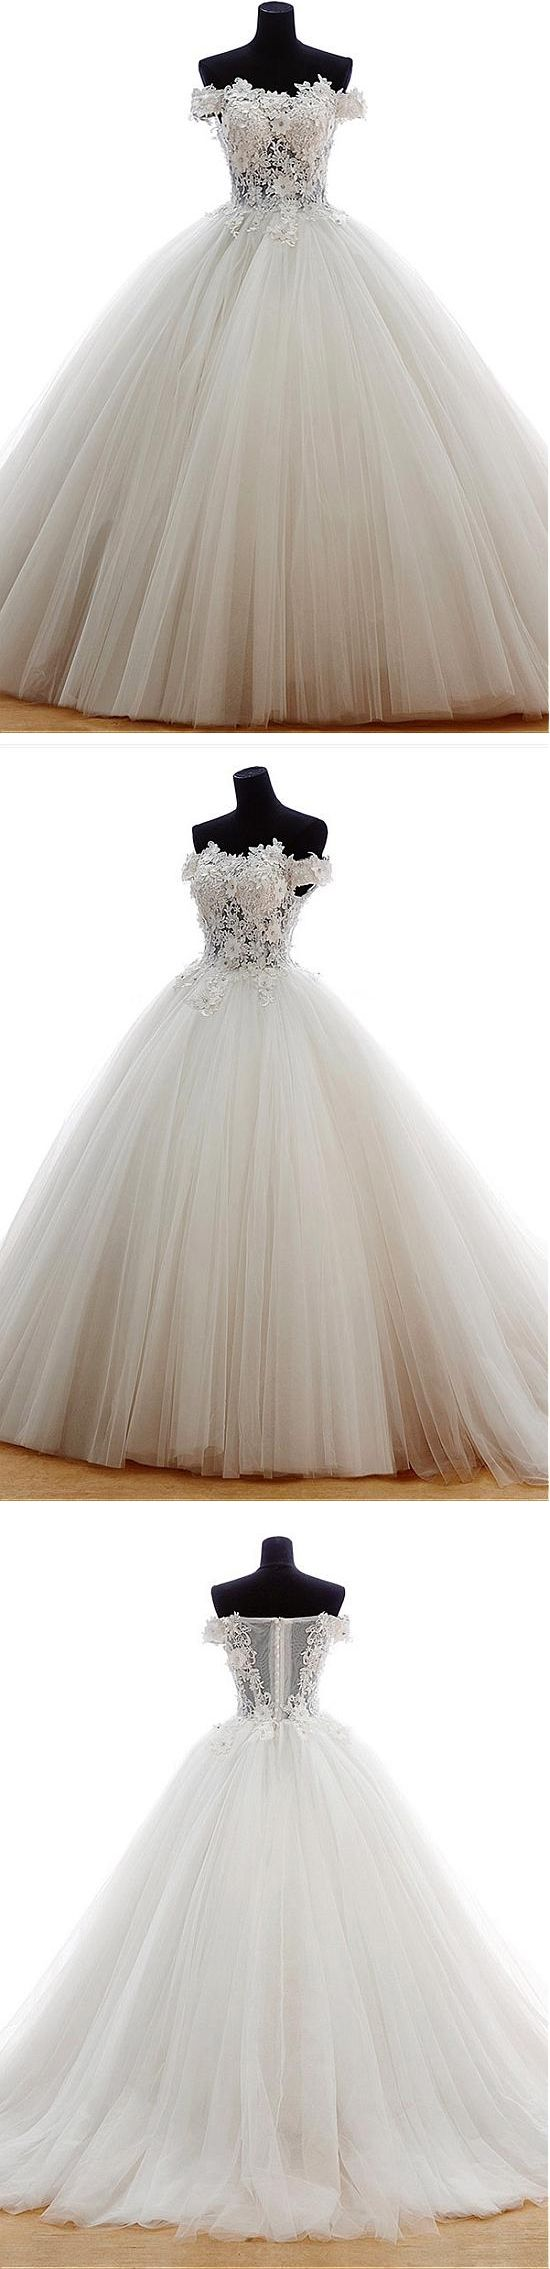 Chic Wedding Dresses Off-the-shoulder Wedding Dress Appliques Tulle Wedding Dress Ball Gown Bridal Gown #annapromdress #weddingdress #wedding #bridalgown #BridalGowns #cheapweddingdress #fashion #style #dance #bridal